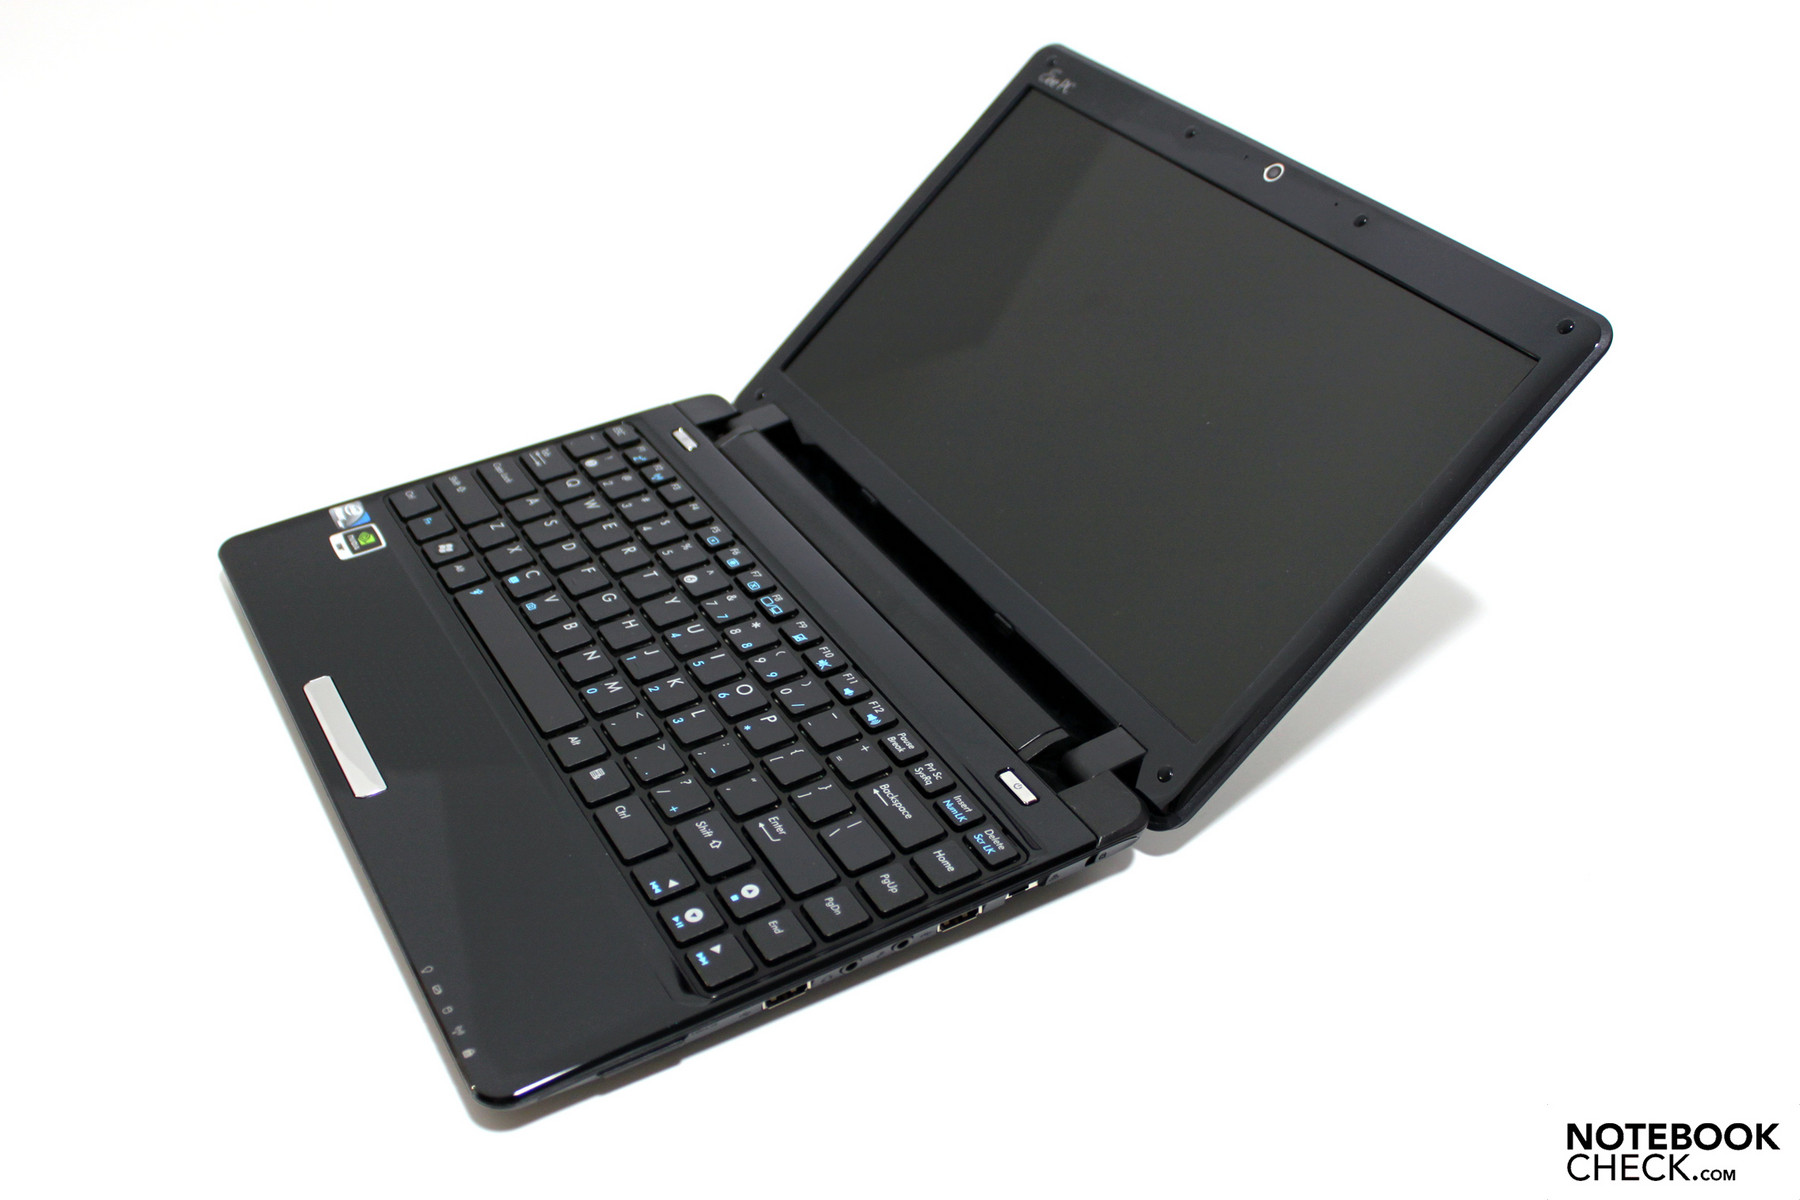 Driver for Asus Eee PC 1201NL Notebook Audio